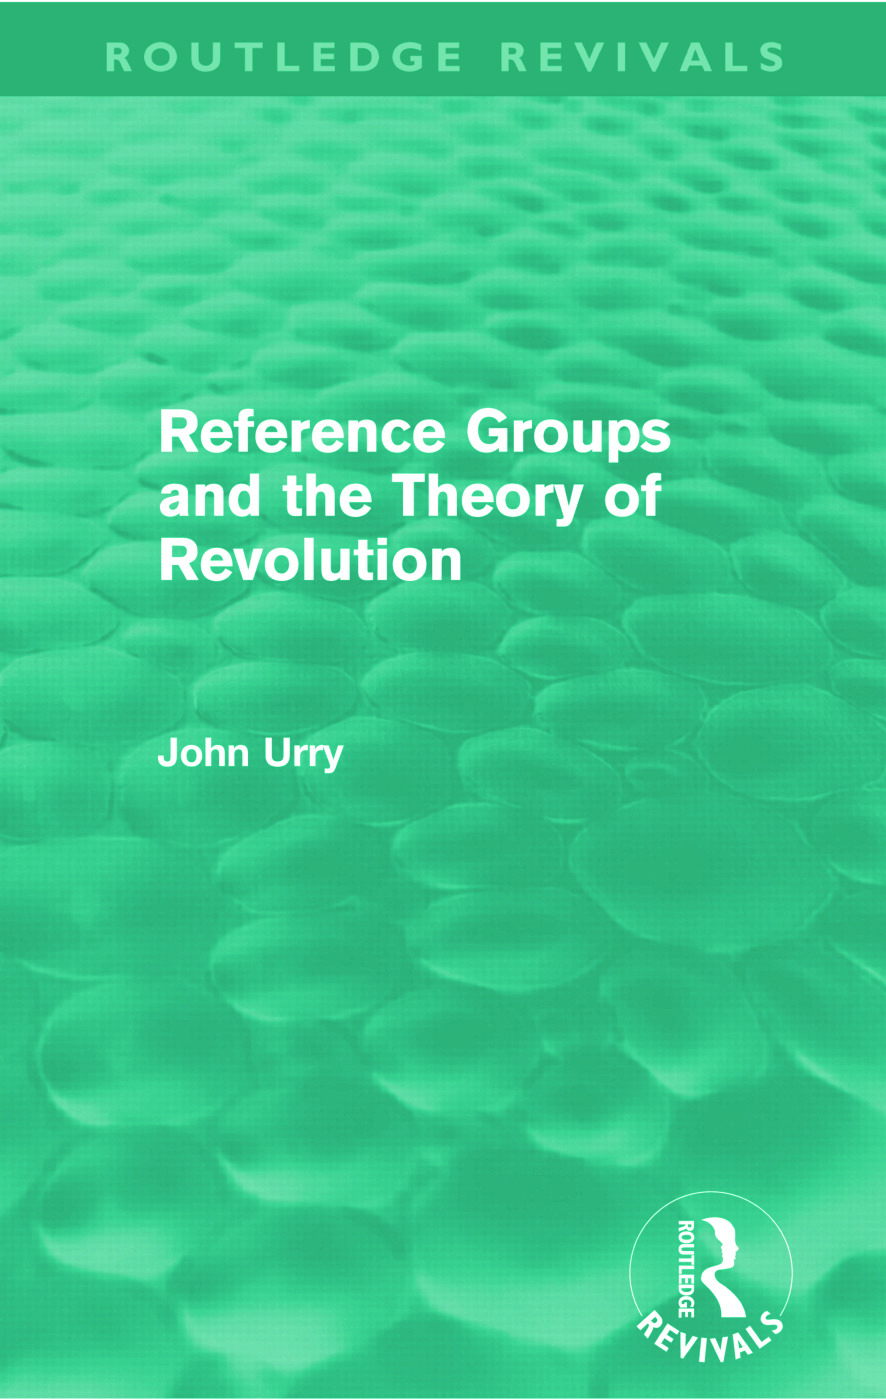 Reference Groups and the Theory of Revolution (Routledge Revivals) (Paperback) book cover